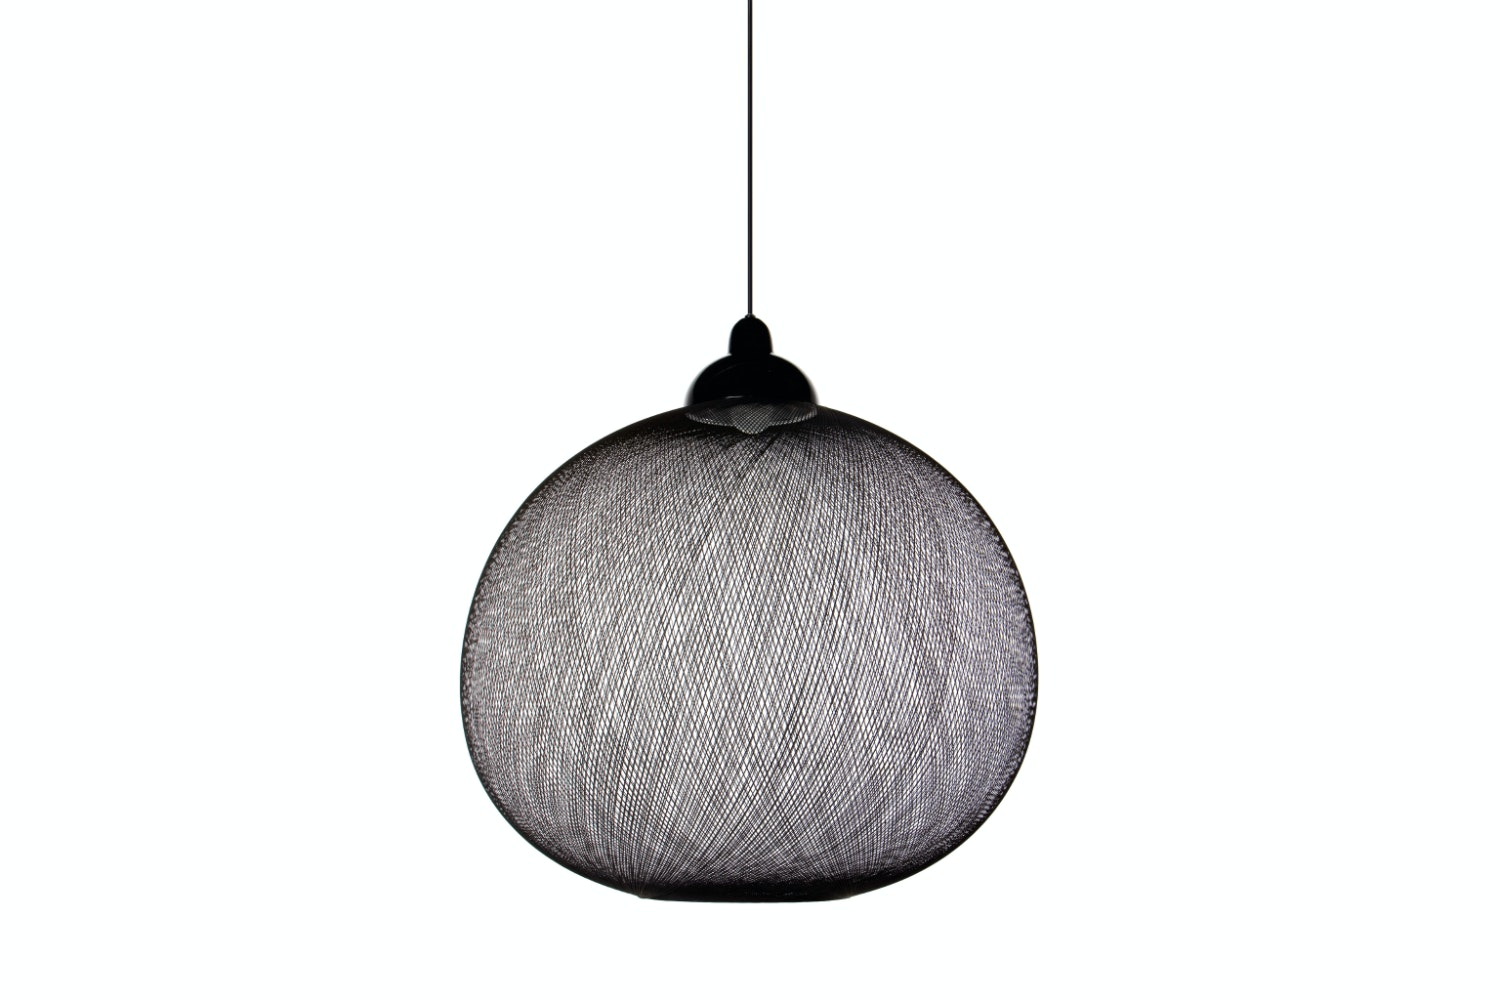 Non Random Large Black Suspension Lamp by Bertjan Pot for Moooi